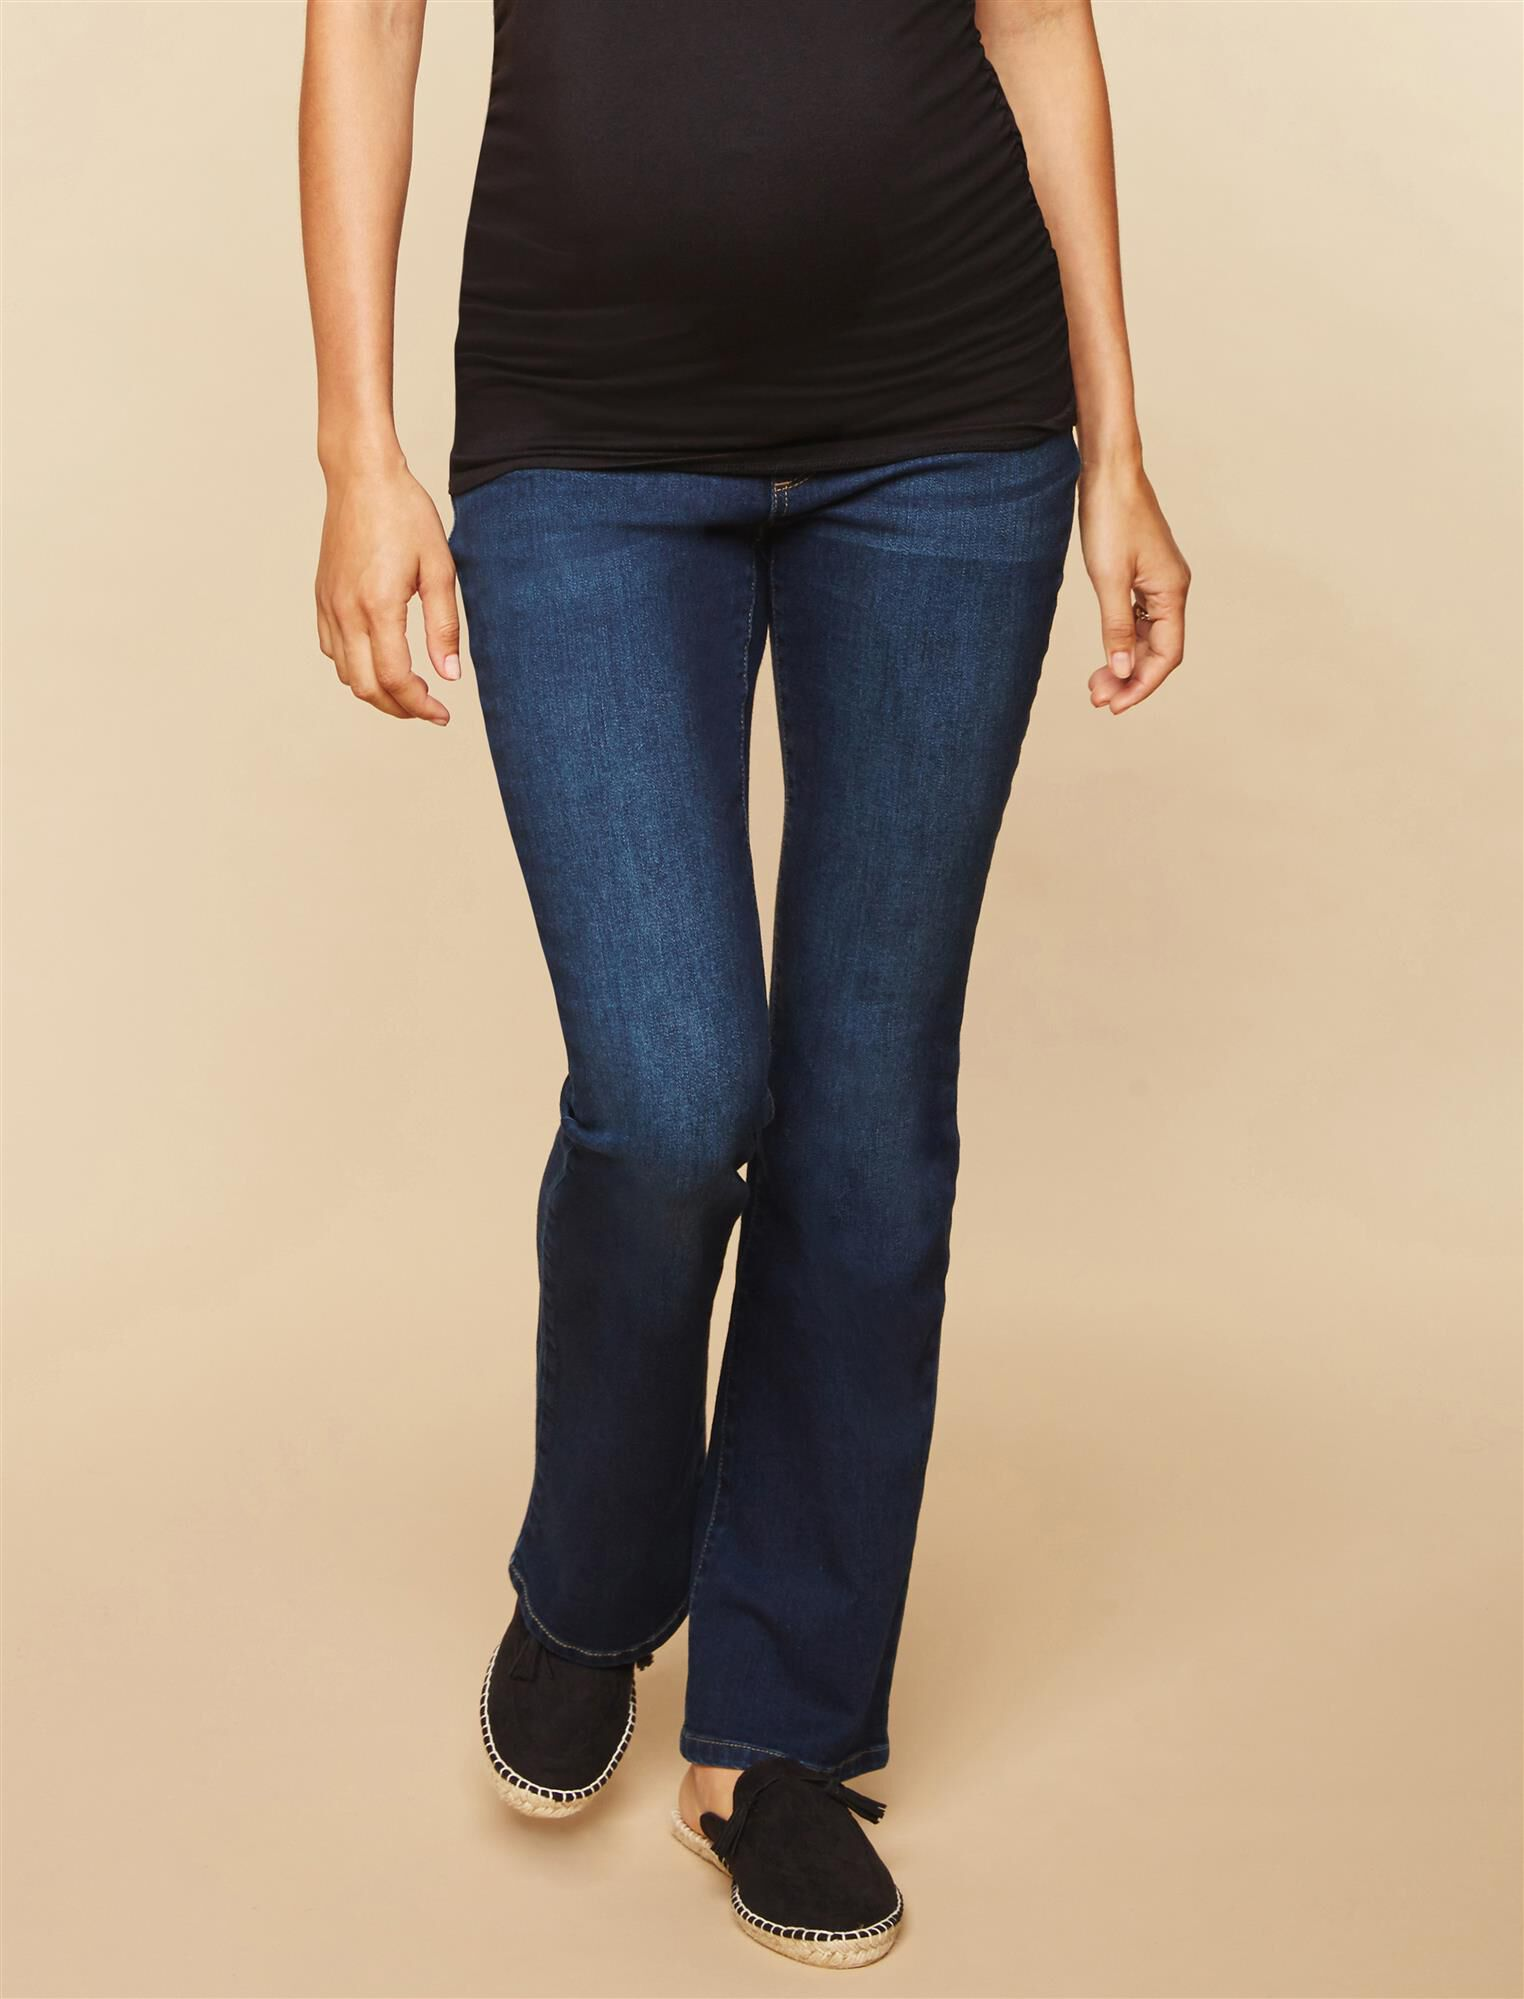 Petite Secret Fit Belly Stretch Boot Cut Maternity Jeans